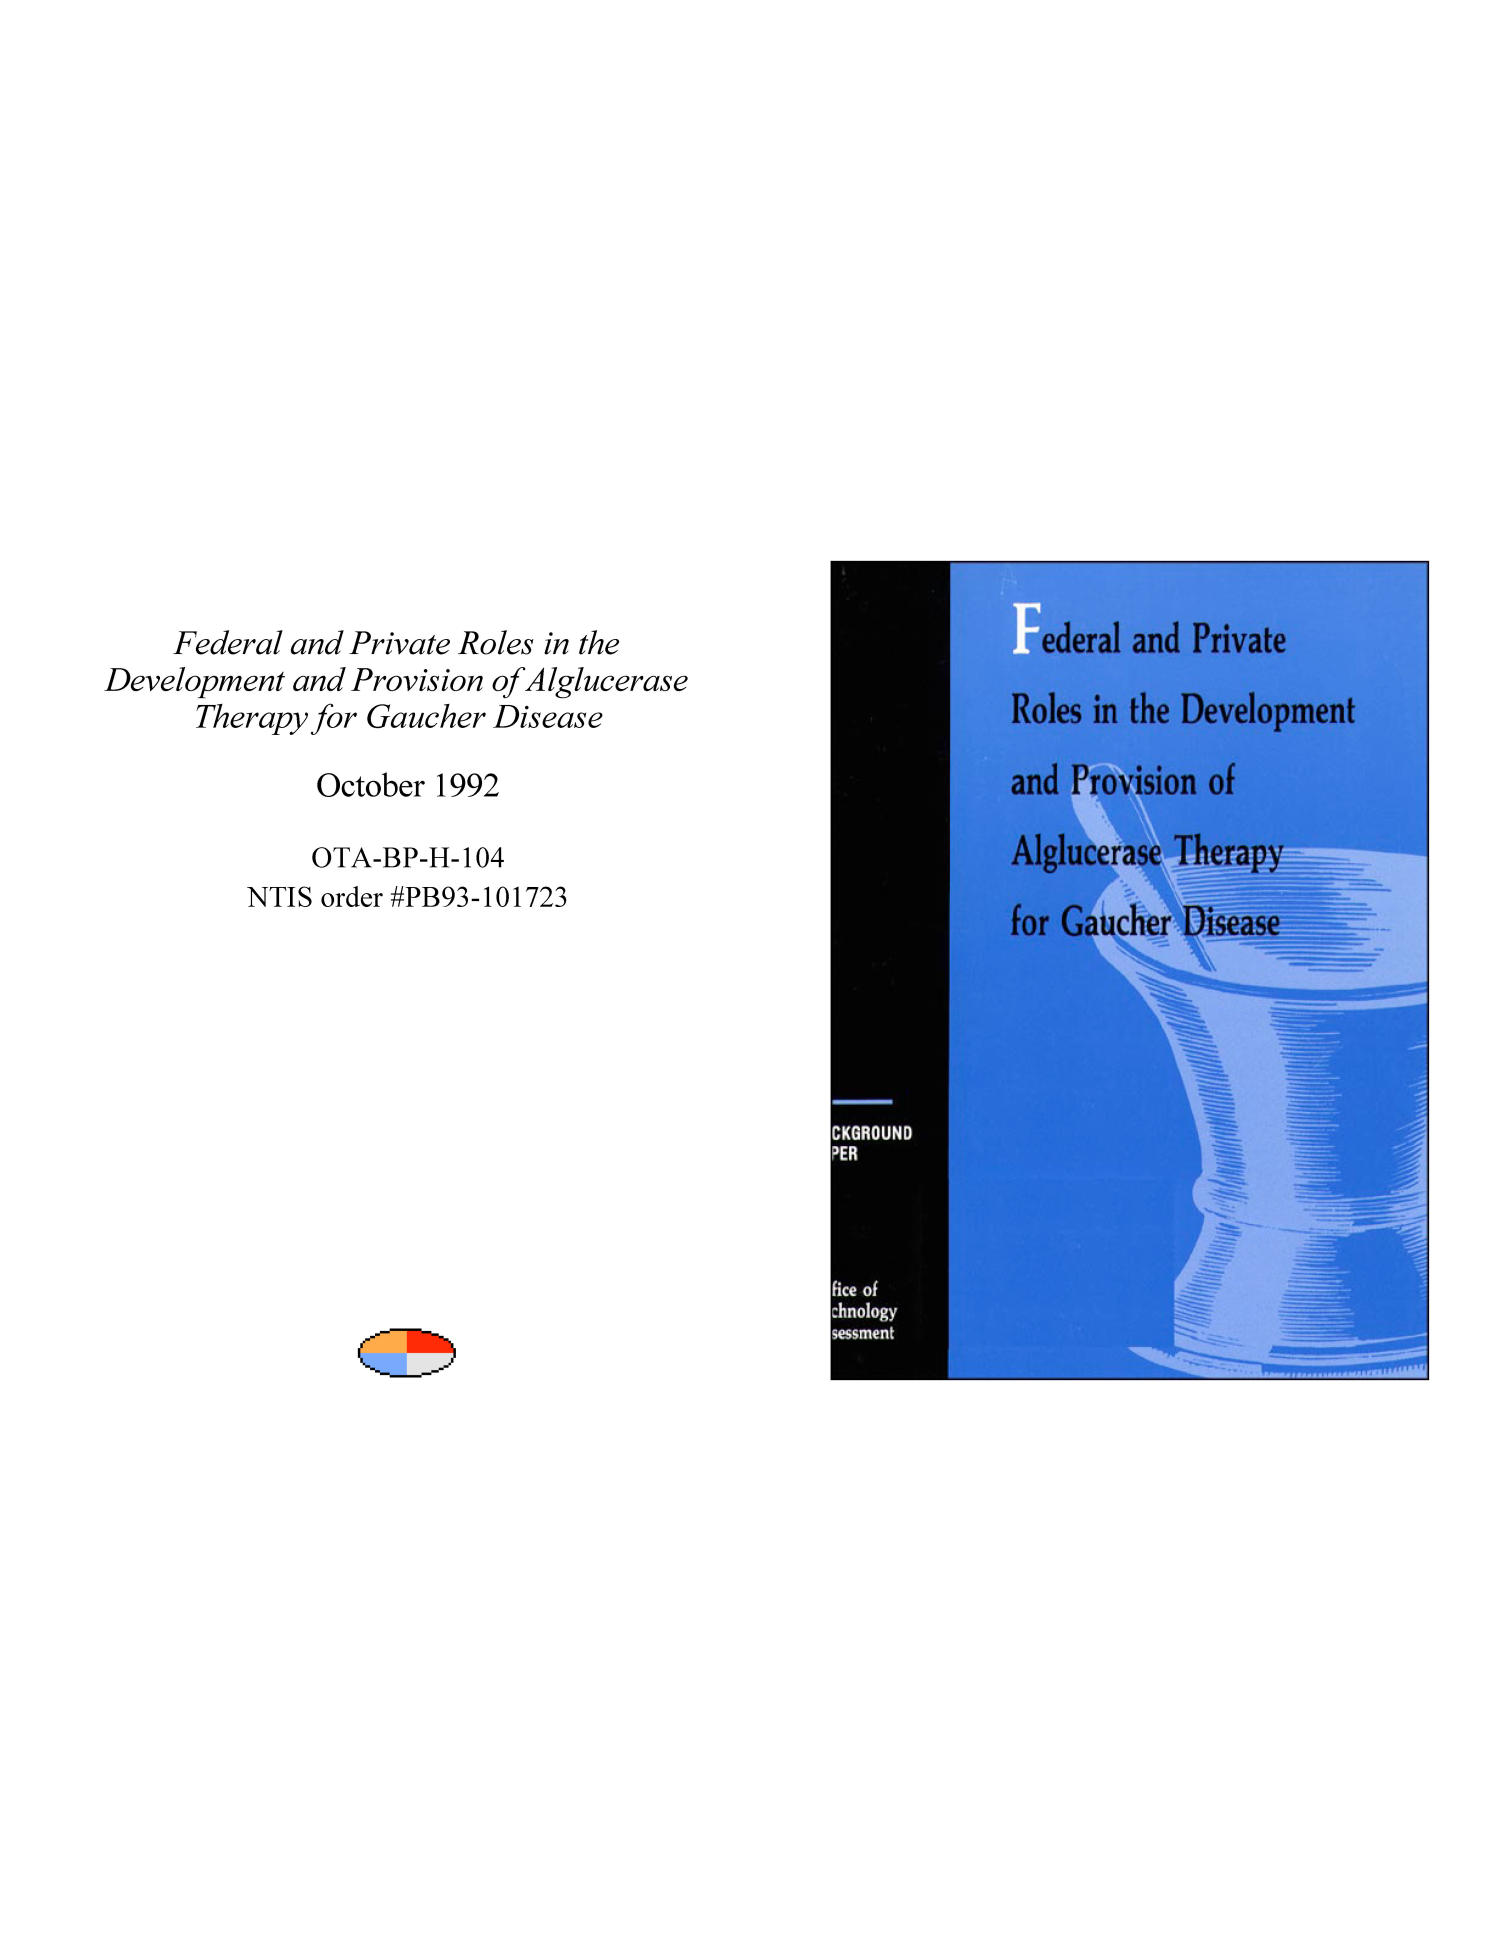 Federal and Private Roles in the Development and Provision of Alglucerase Therapy for Gaucher Disease                                                                                                      Front Cover